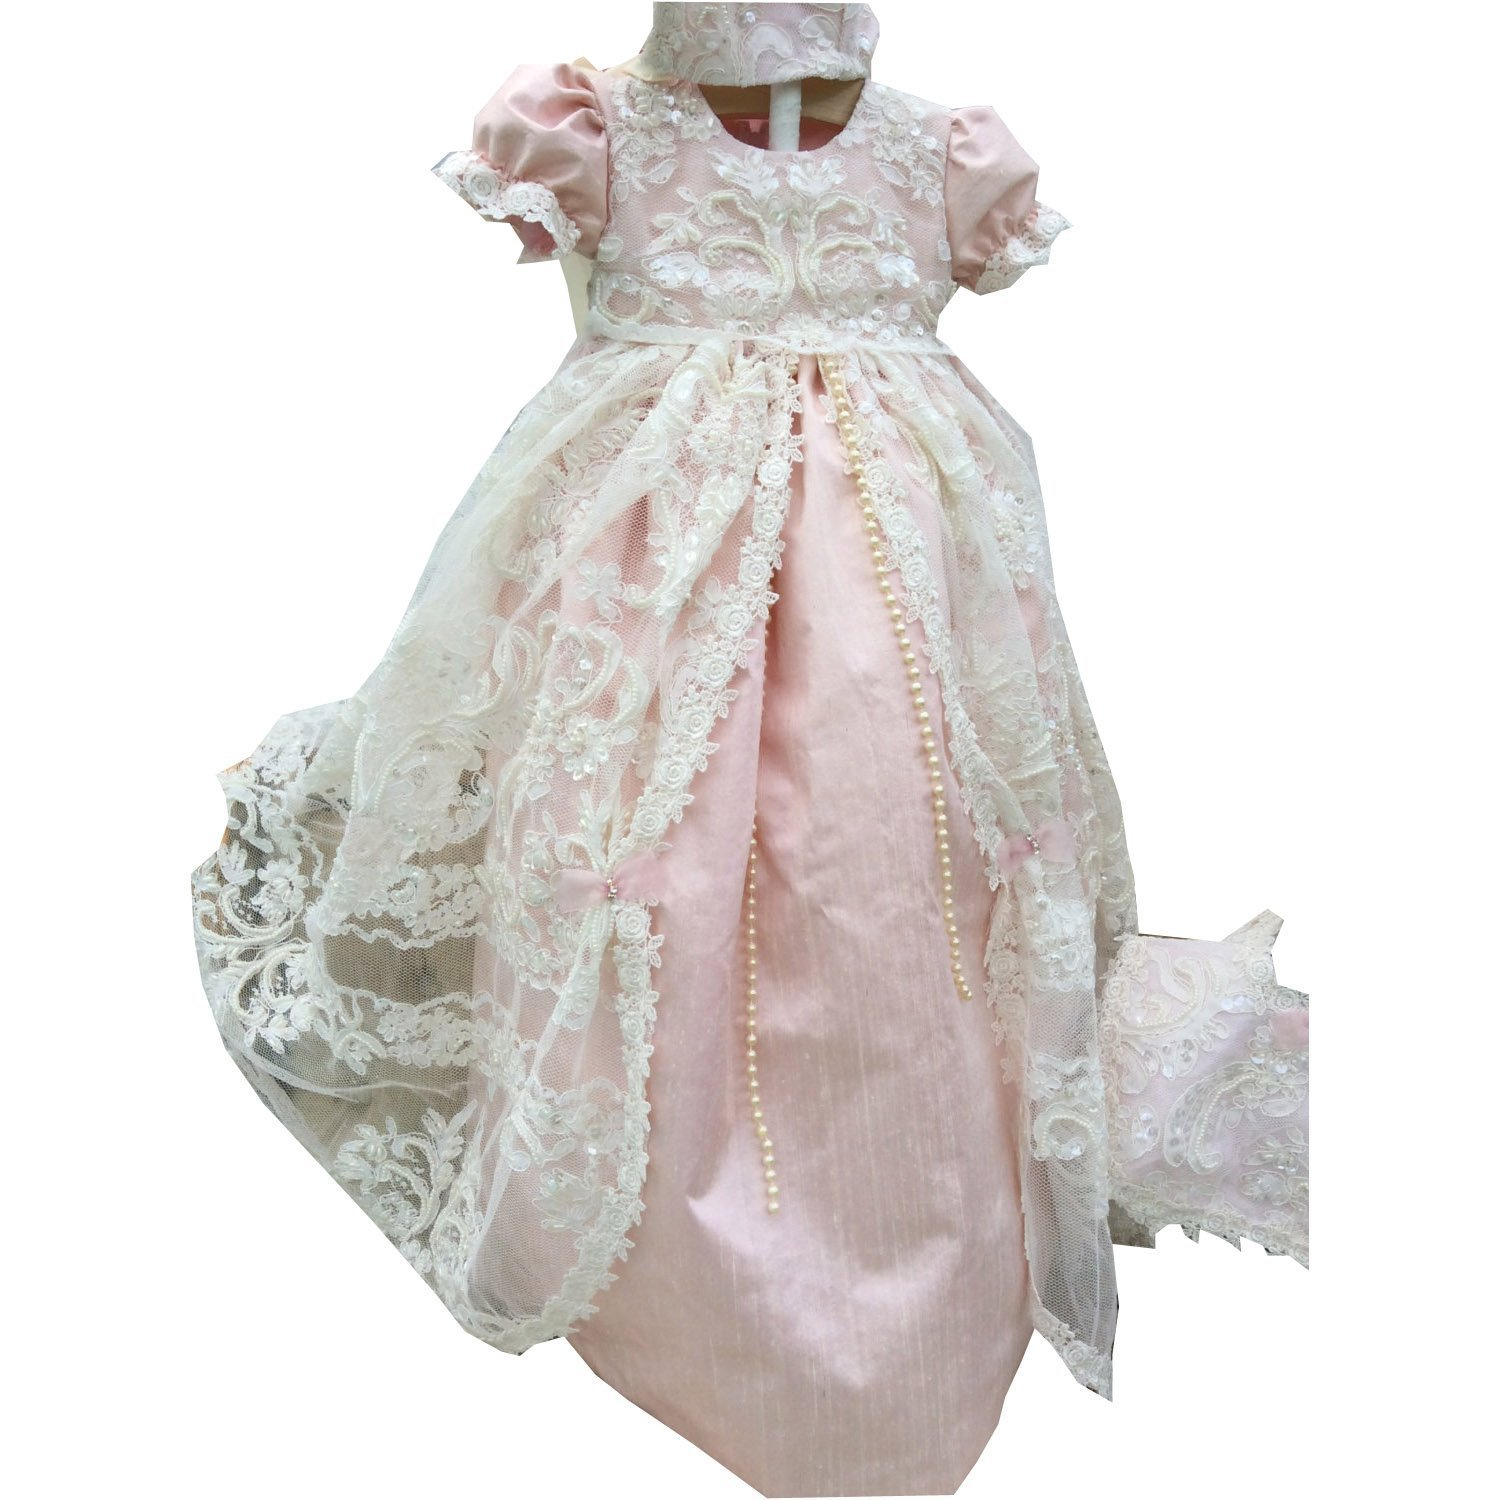 Kelaixiang Short Sleeve Luxury Lace Beading Christening Gown for Baby Girl (12-18months) by Kelaixiang